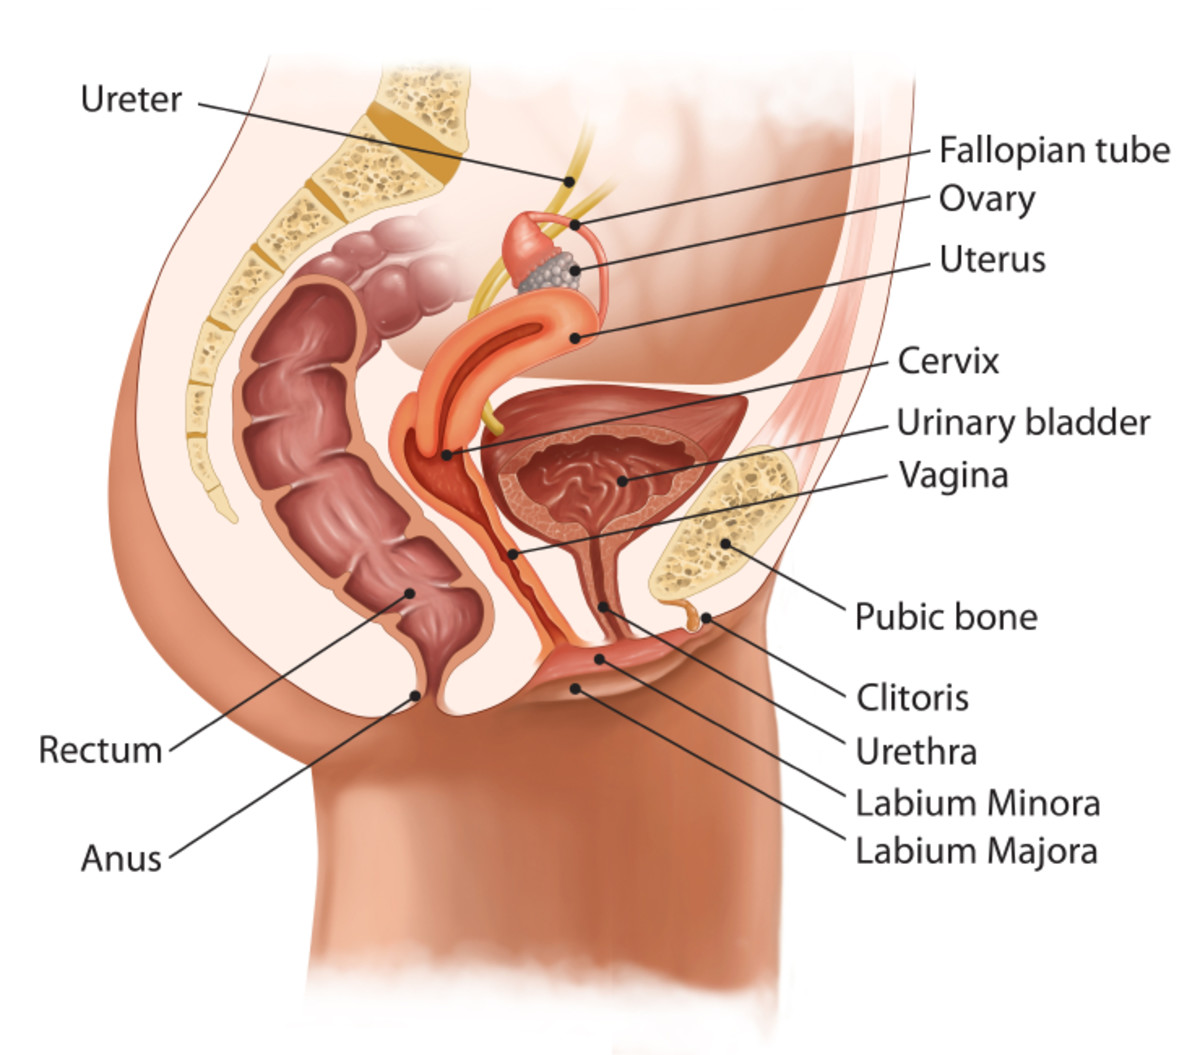 Illustration showing an anteverted (forward-tipped uterus).  The top of a  retroverted uterus would lean back toward the rectum.